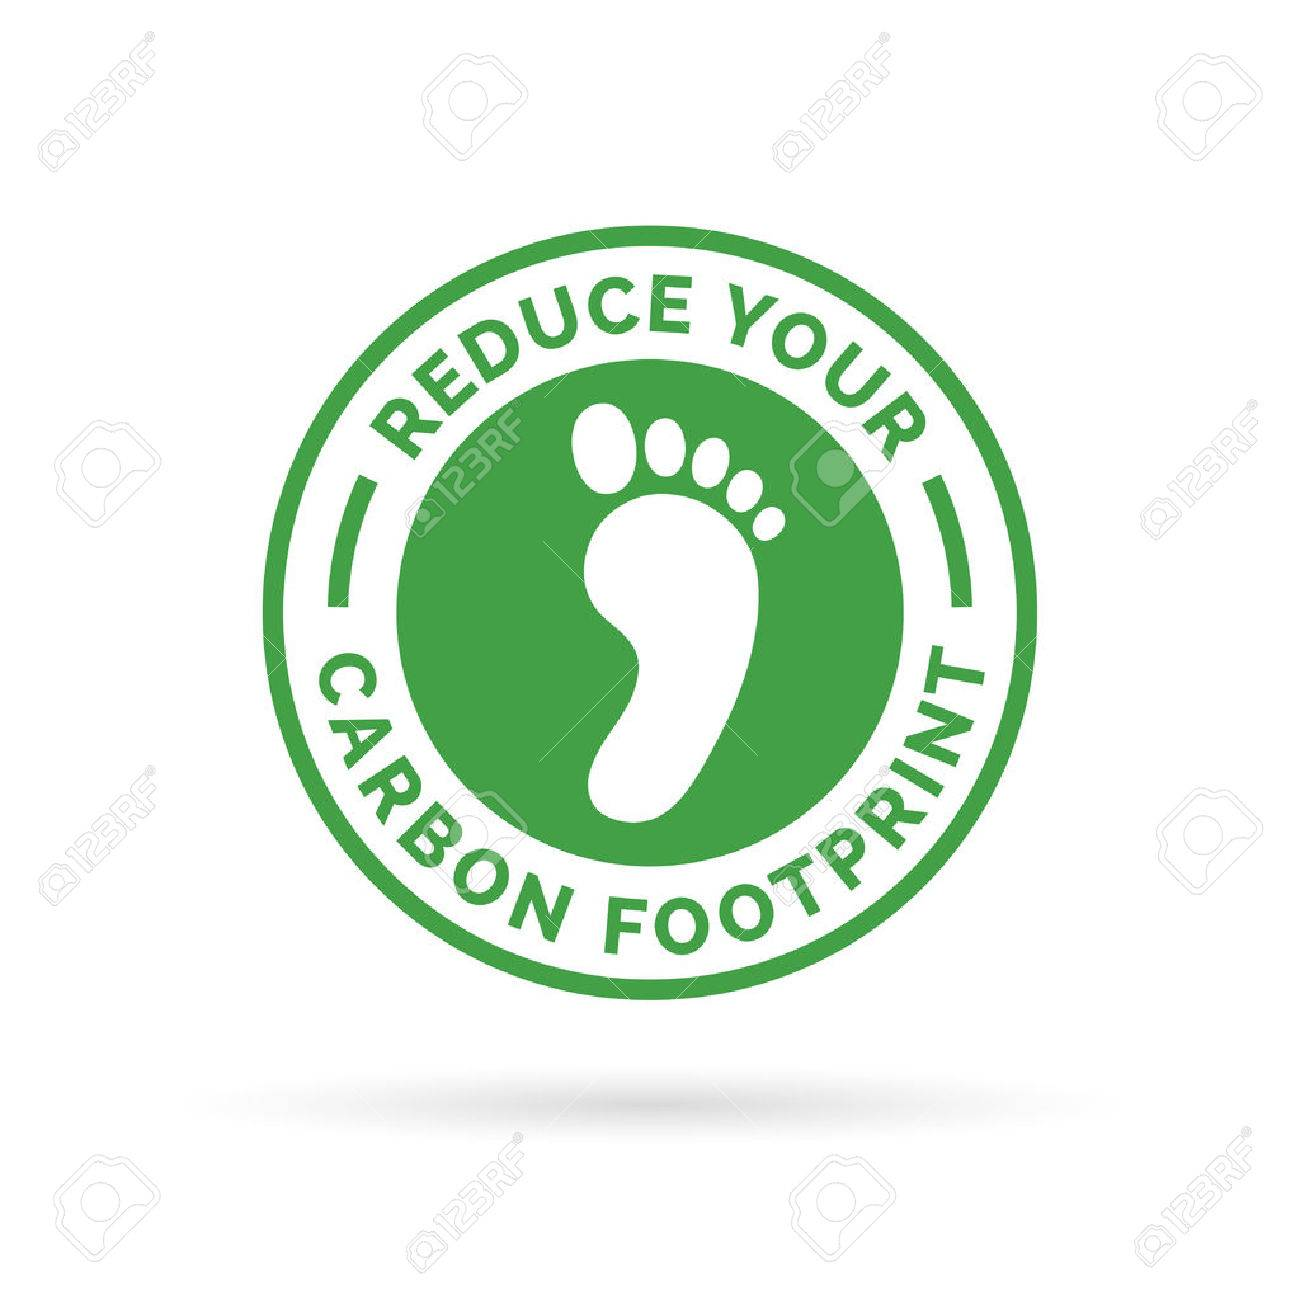 Reduce your carbon footprint icon symbol with green environment footprint badge. - 57067479